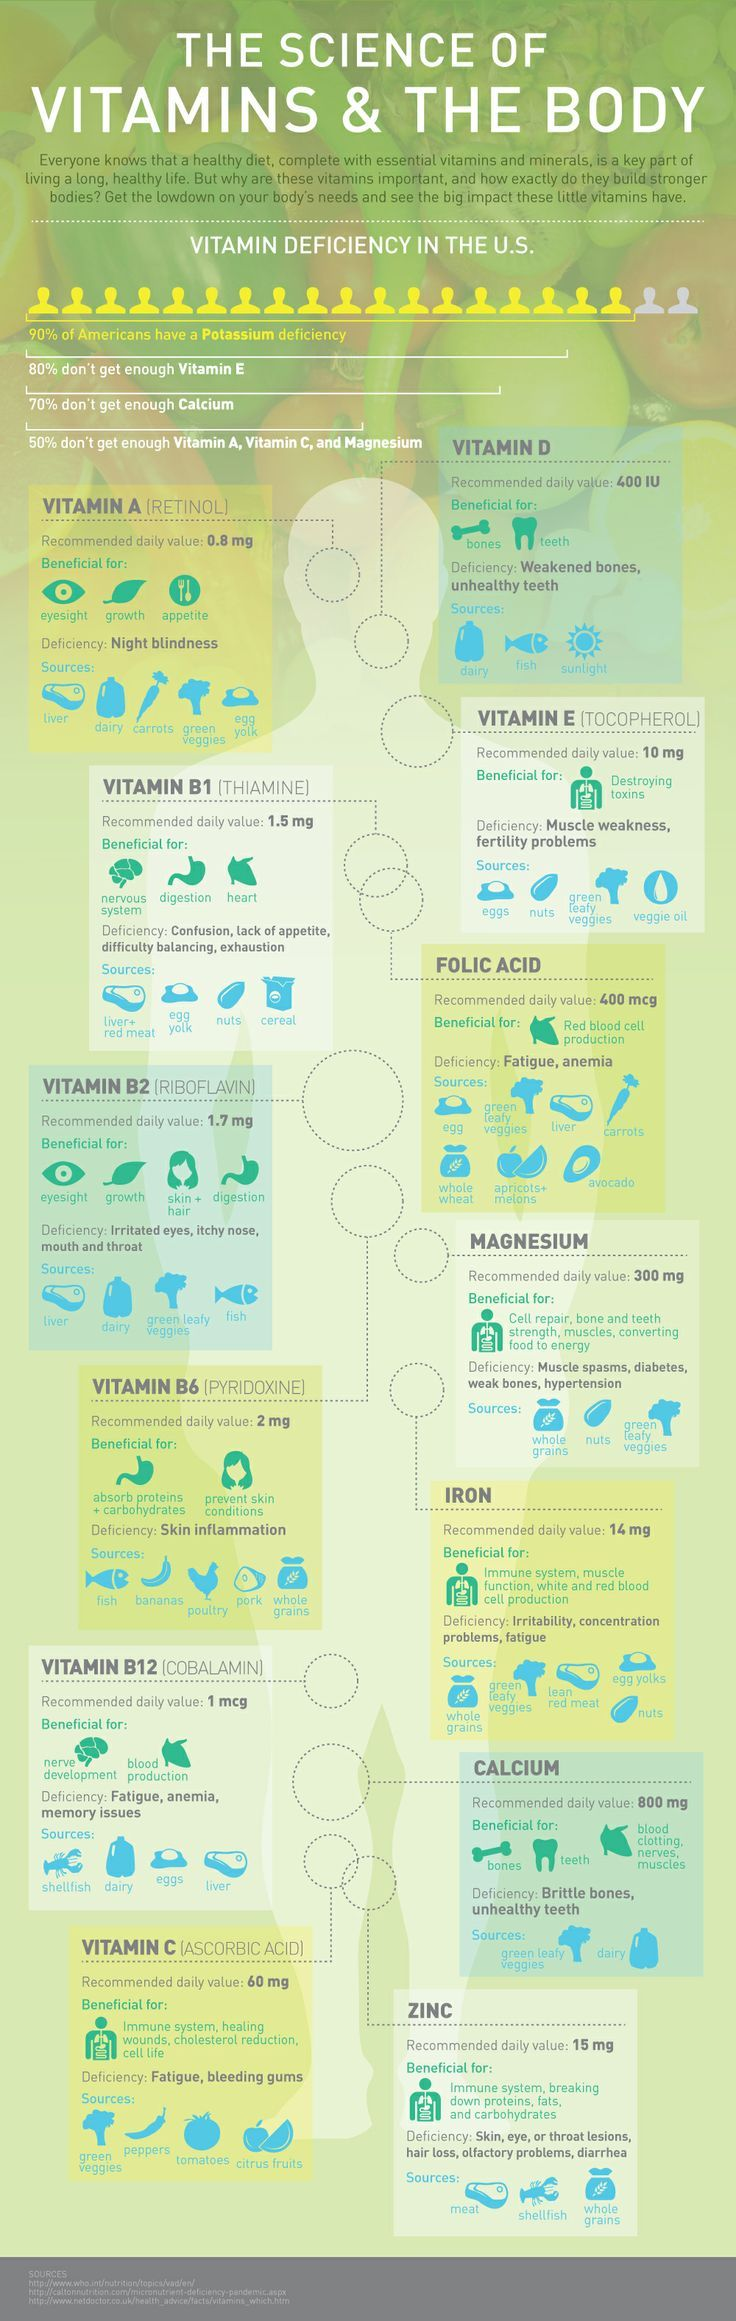 Is #VitaminC Useful For The #CommonCold? + #Infographic pinned with Pinvolve - pinvolve.co